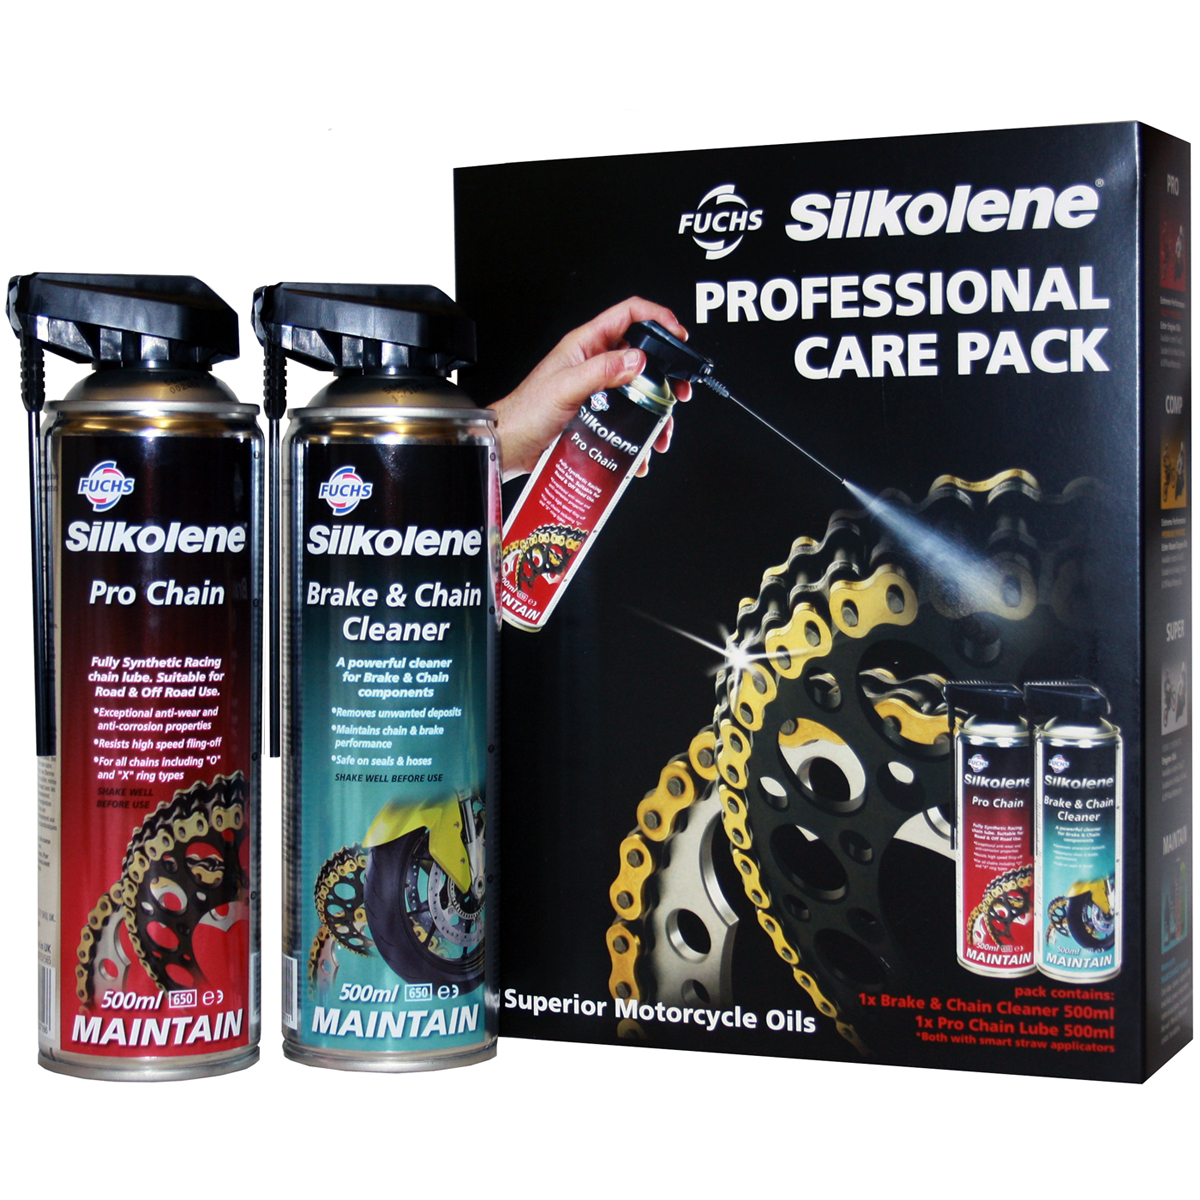 Silkolene Professional Care Pack Chain Lube and Cleaner